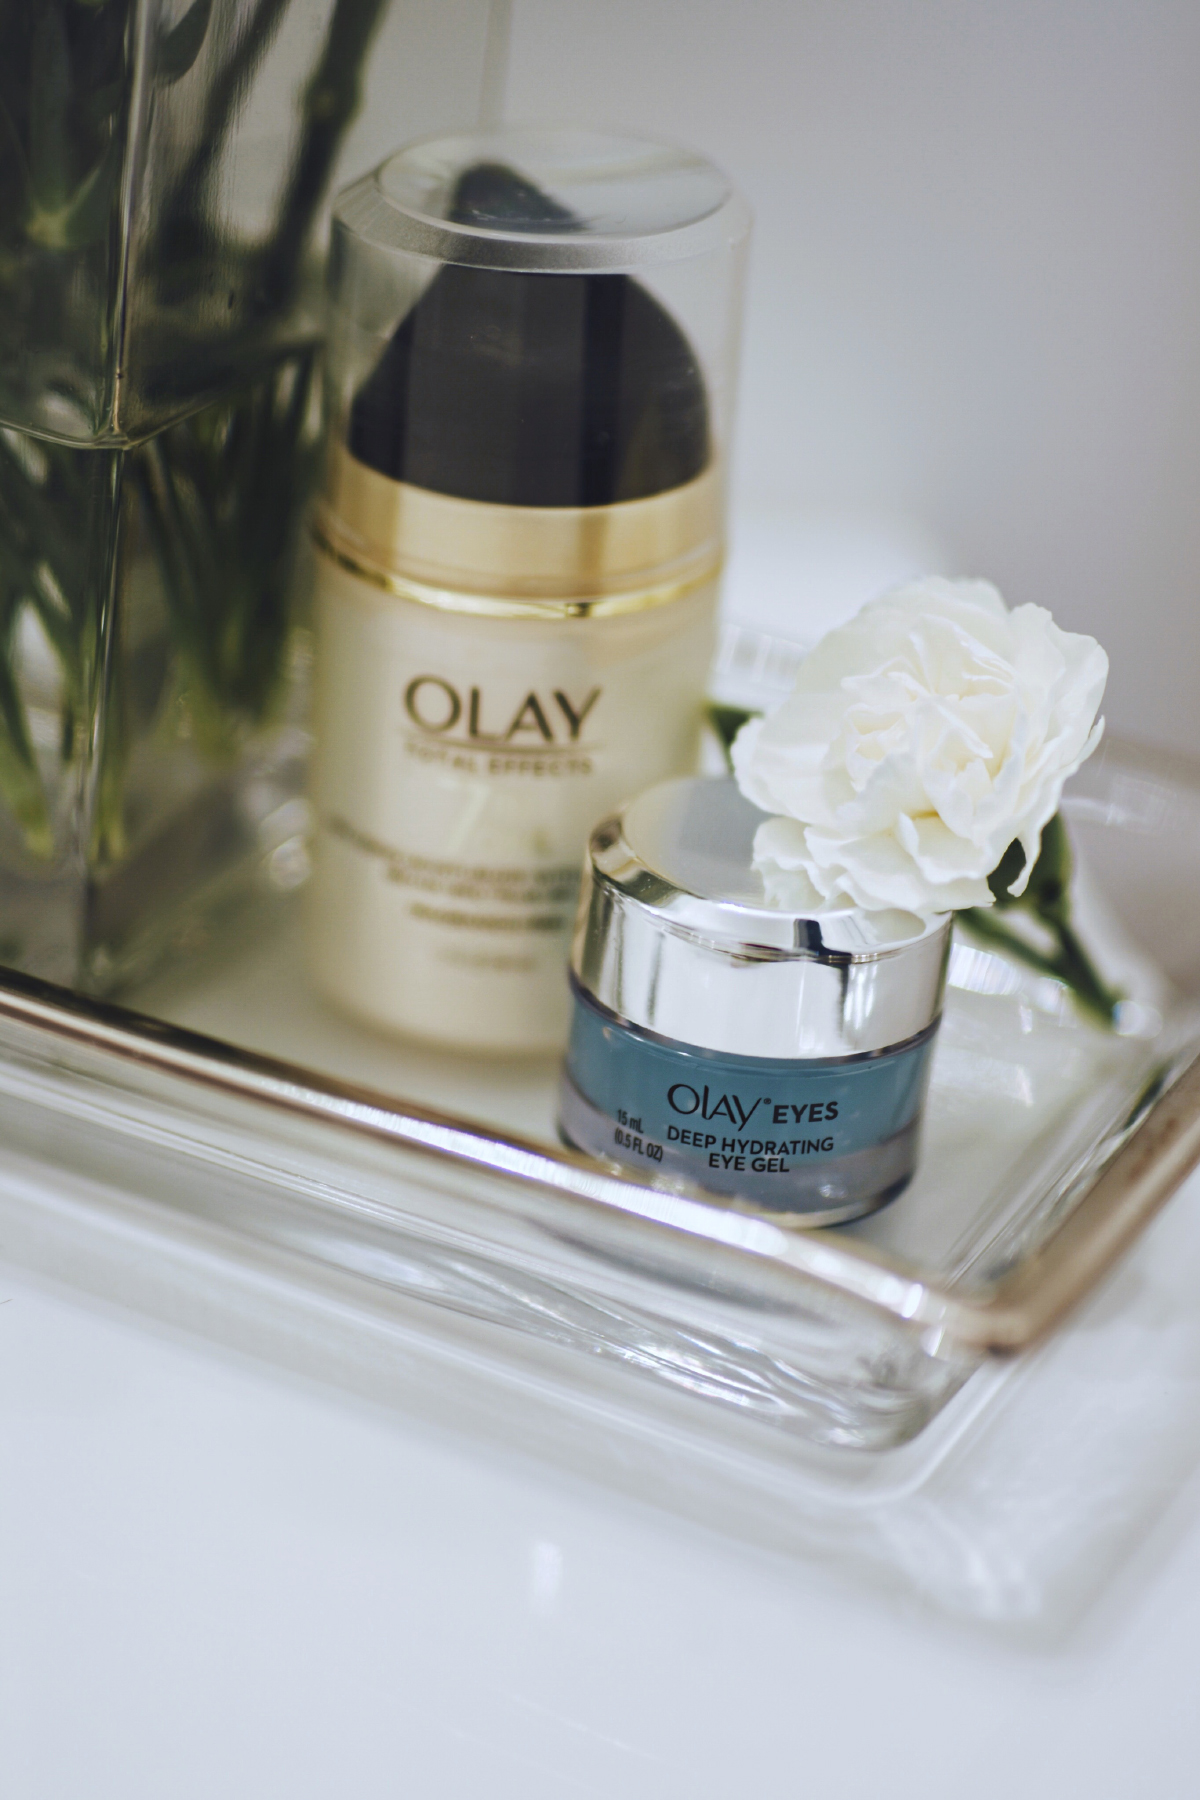 OLAY 28-DAY CHALLENGE